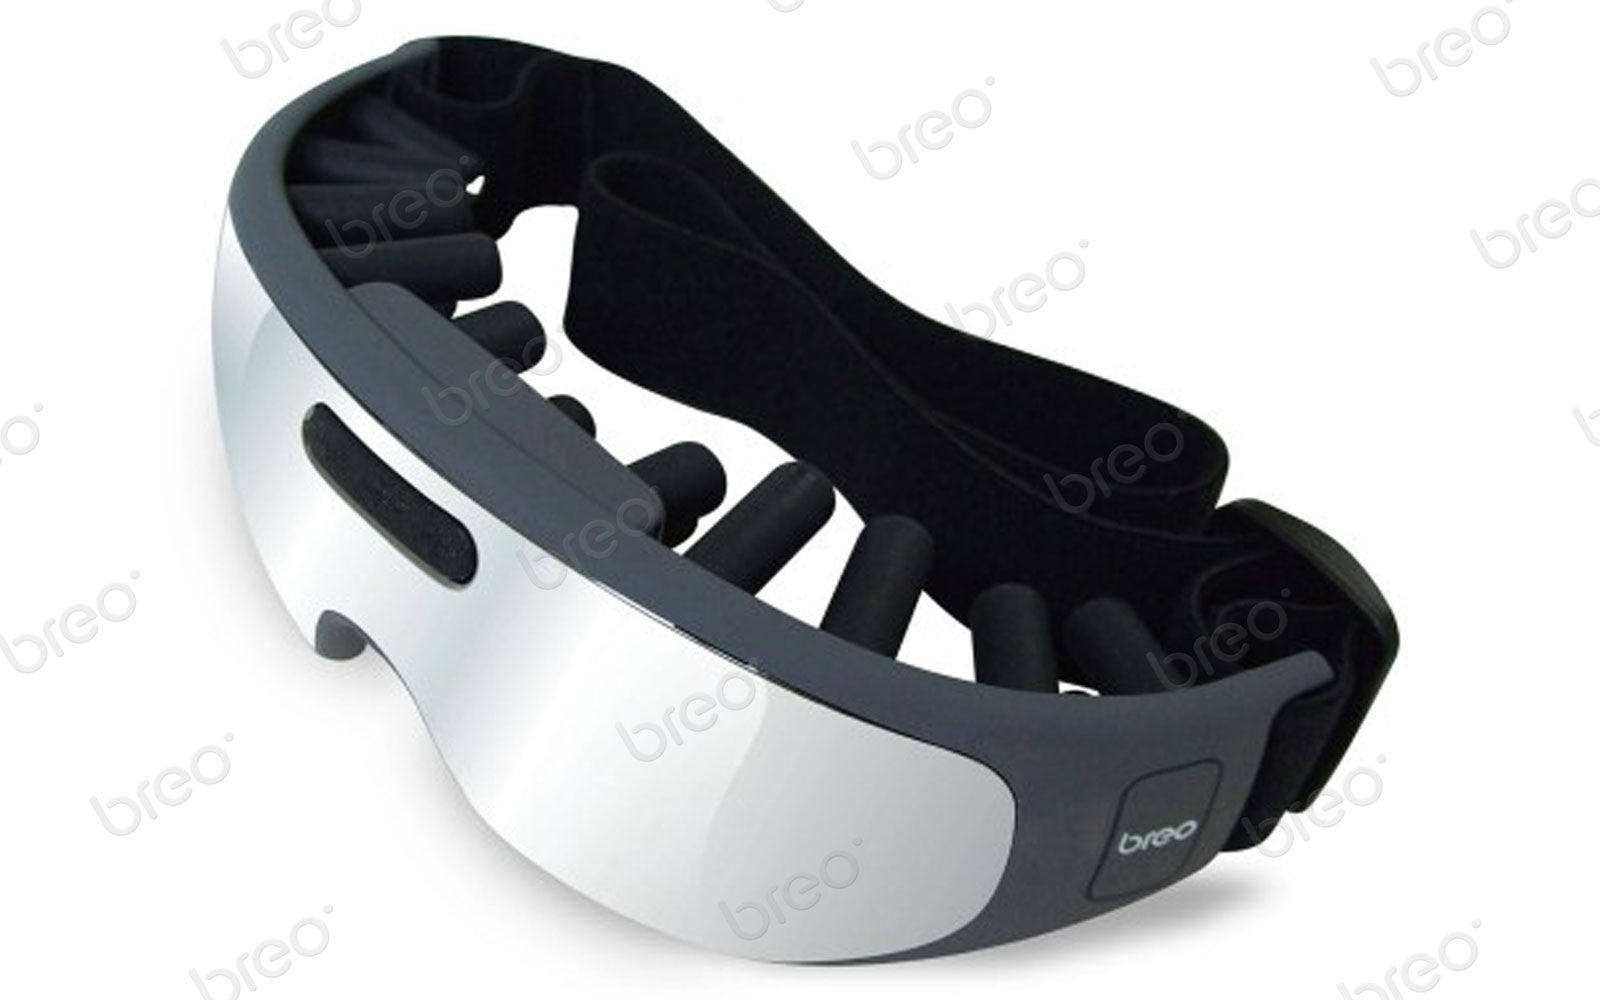 Breo iSee108 Eye Massager - Breo-USA - 3